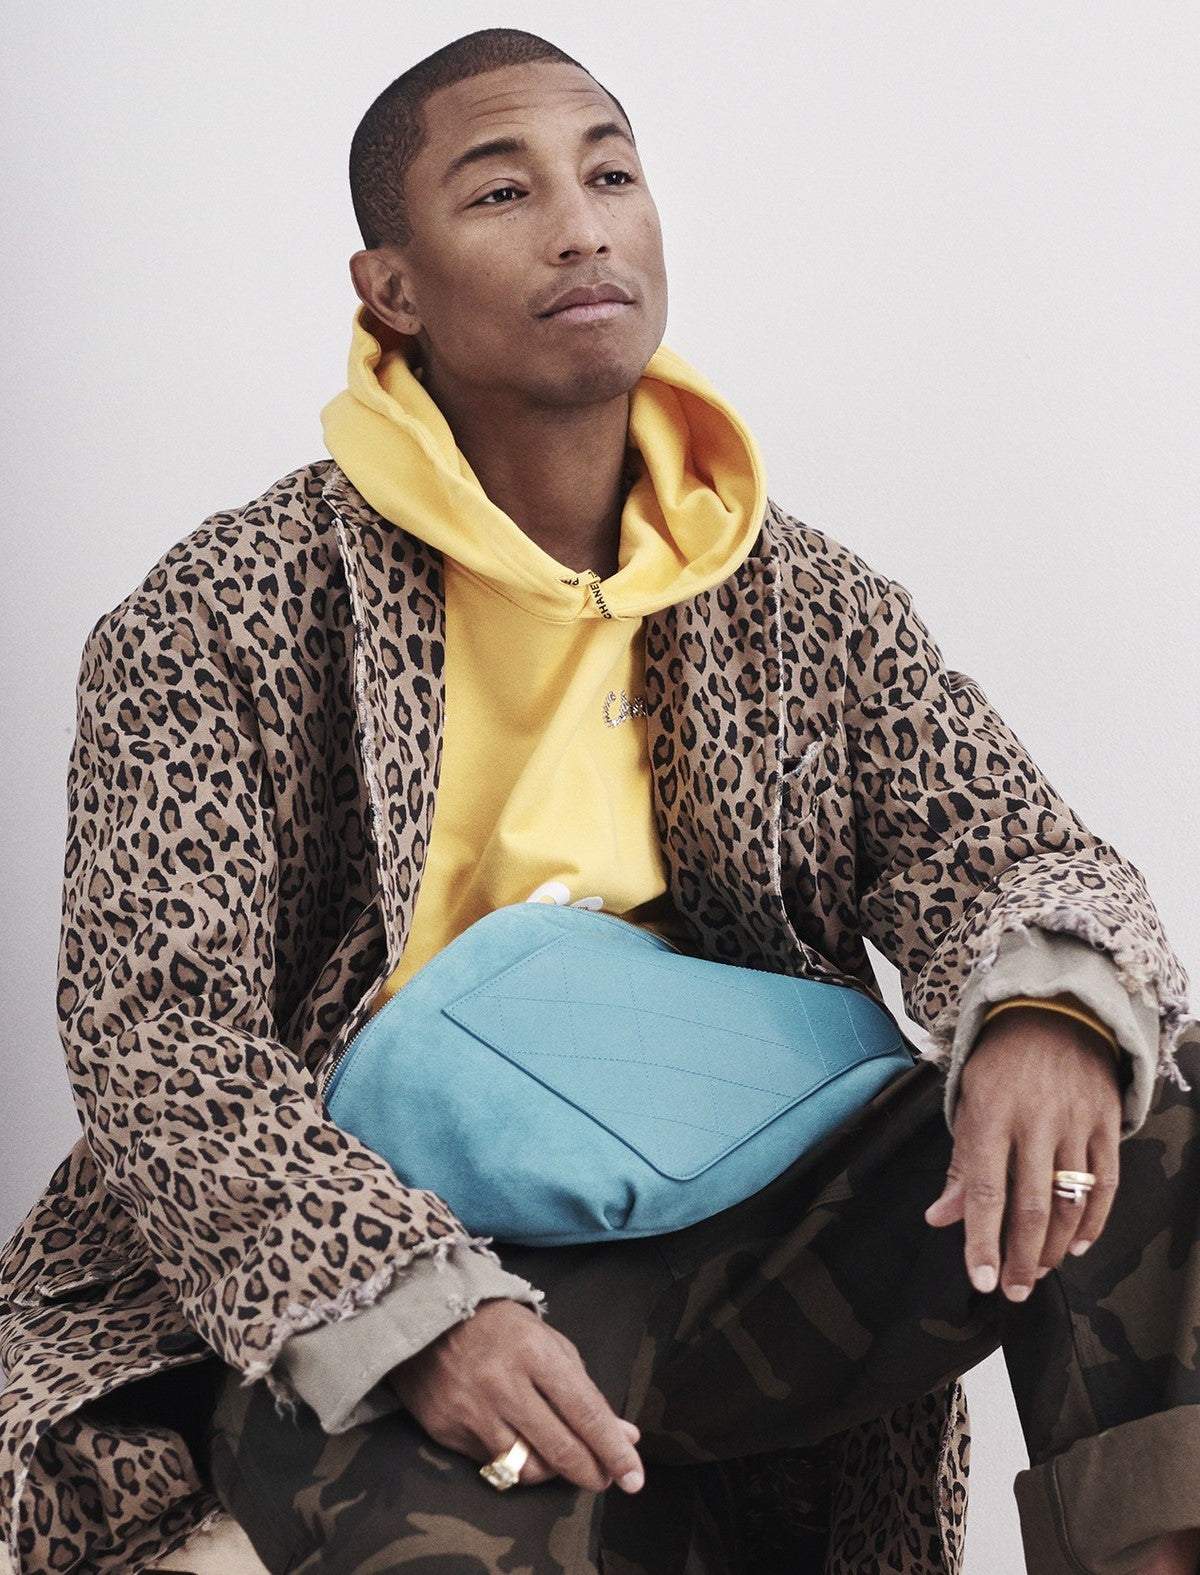 Chanel Pharrell: An Infamous Collaboration of Legendary Proportions